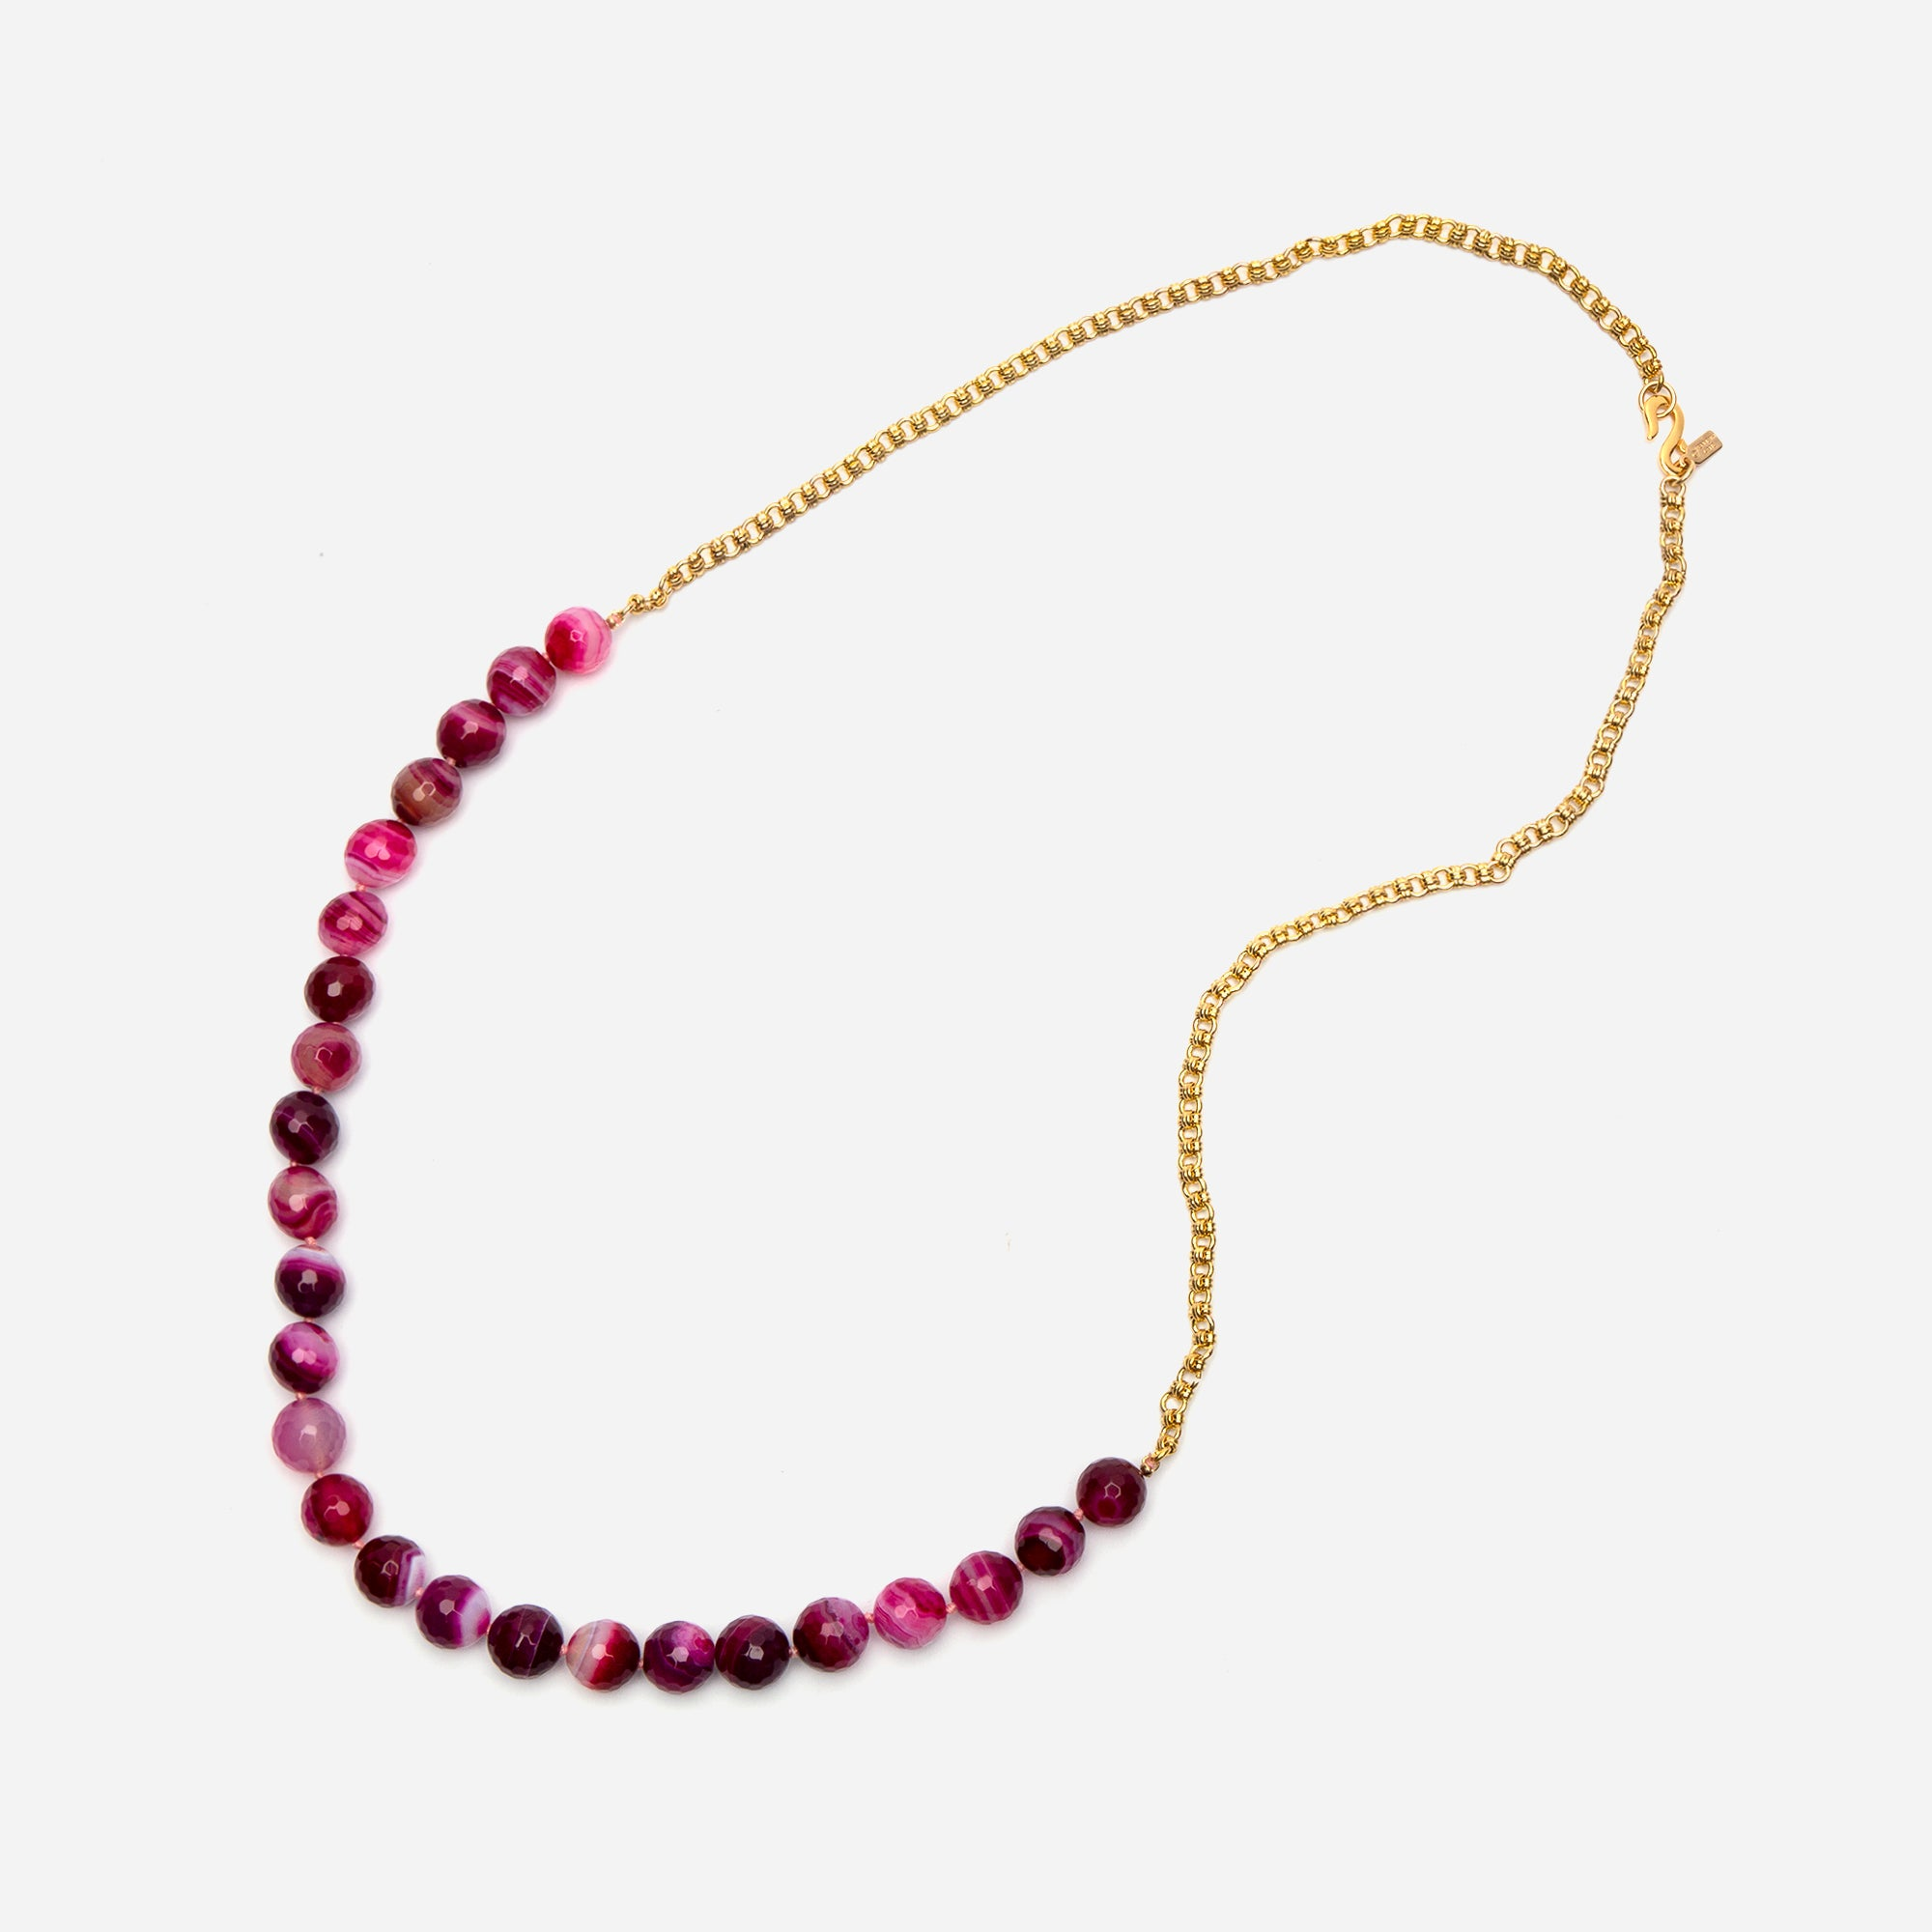 Cherry Agate Bead Necklace